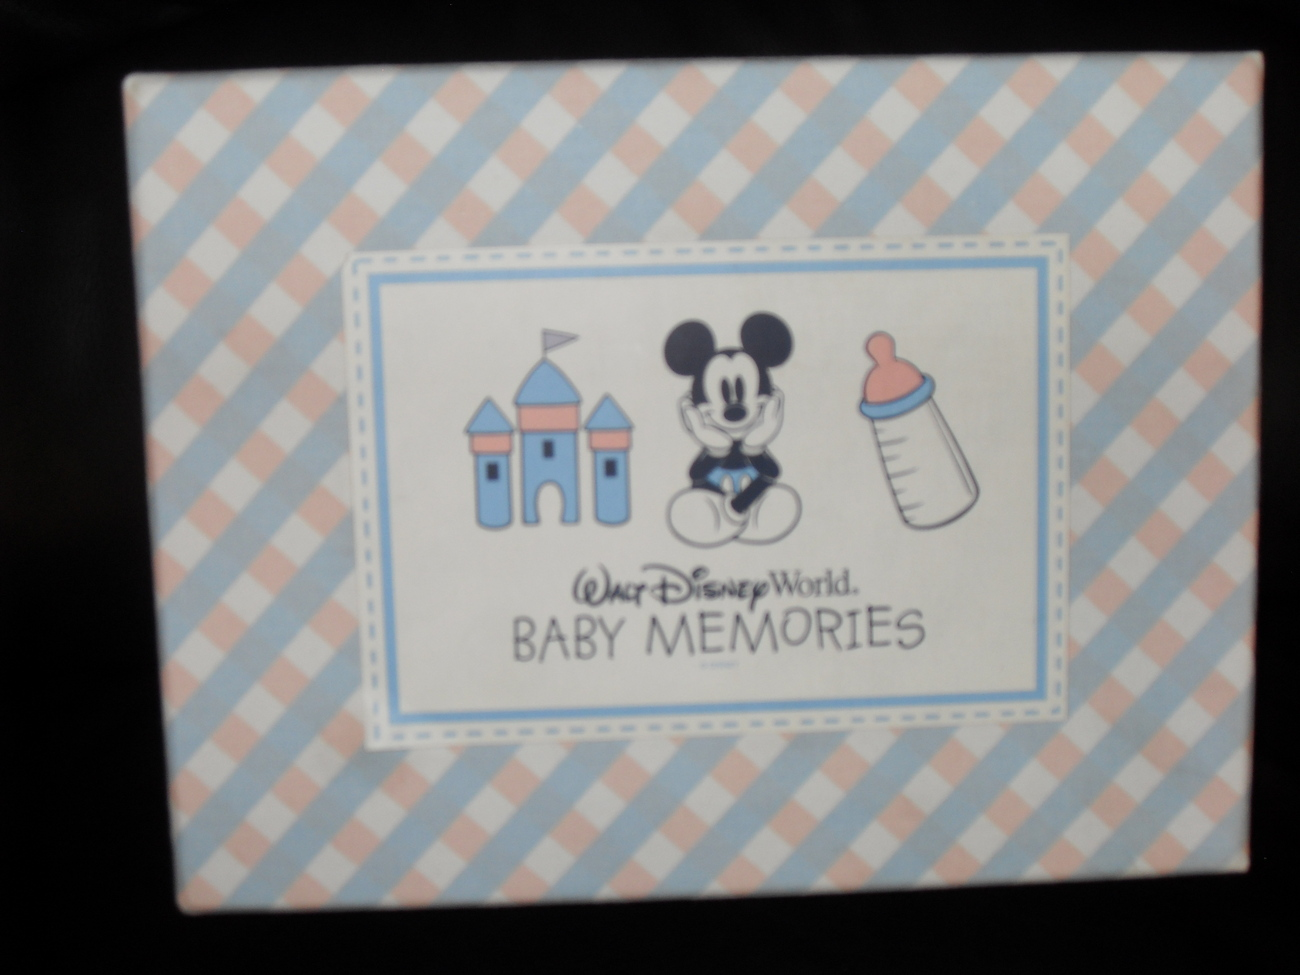 Walt Disney World Baby Memories  Boxed Album Set